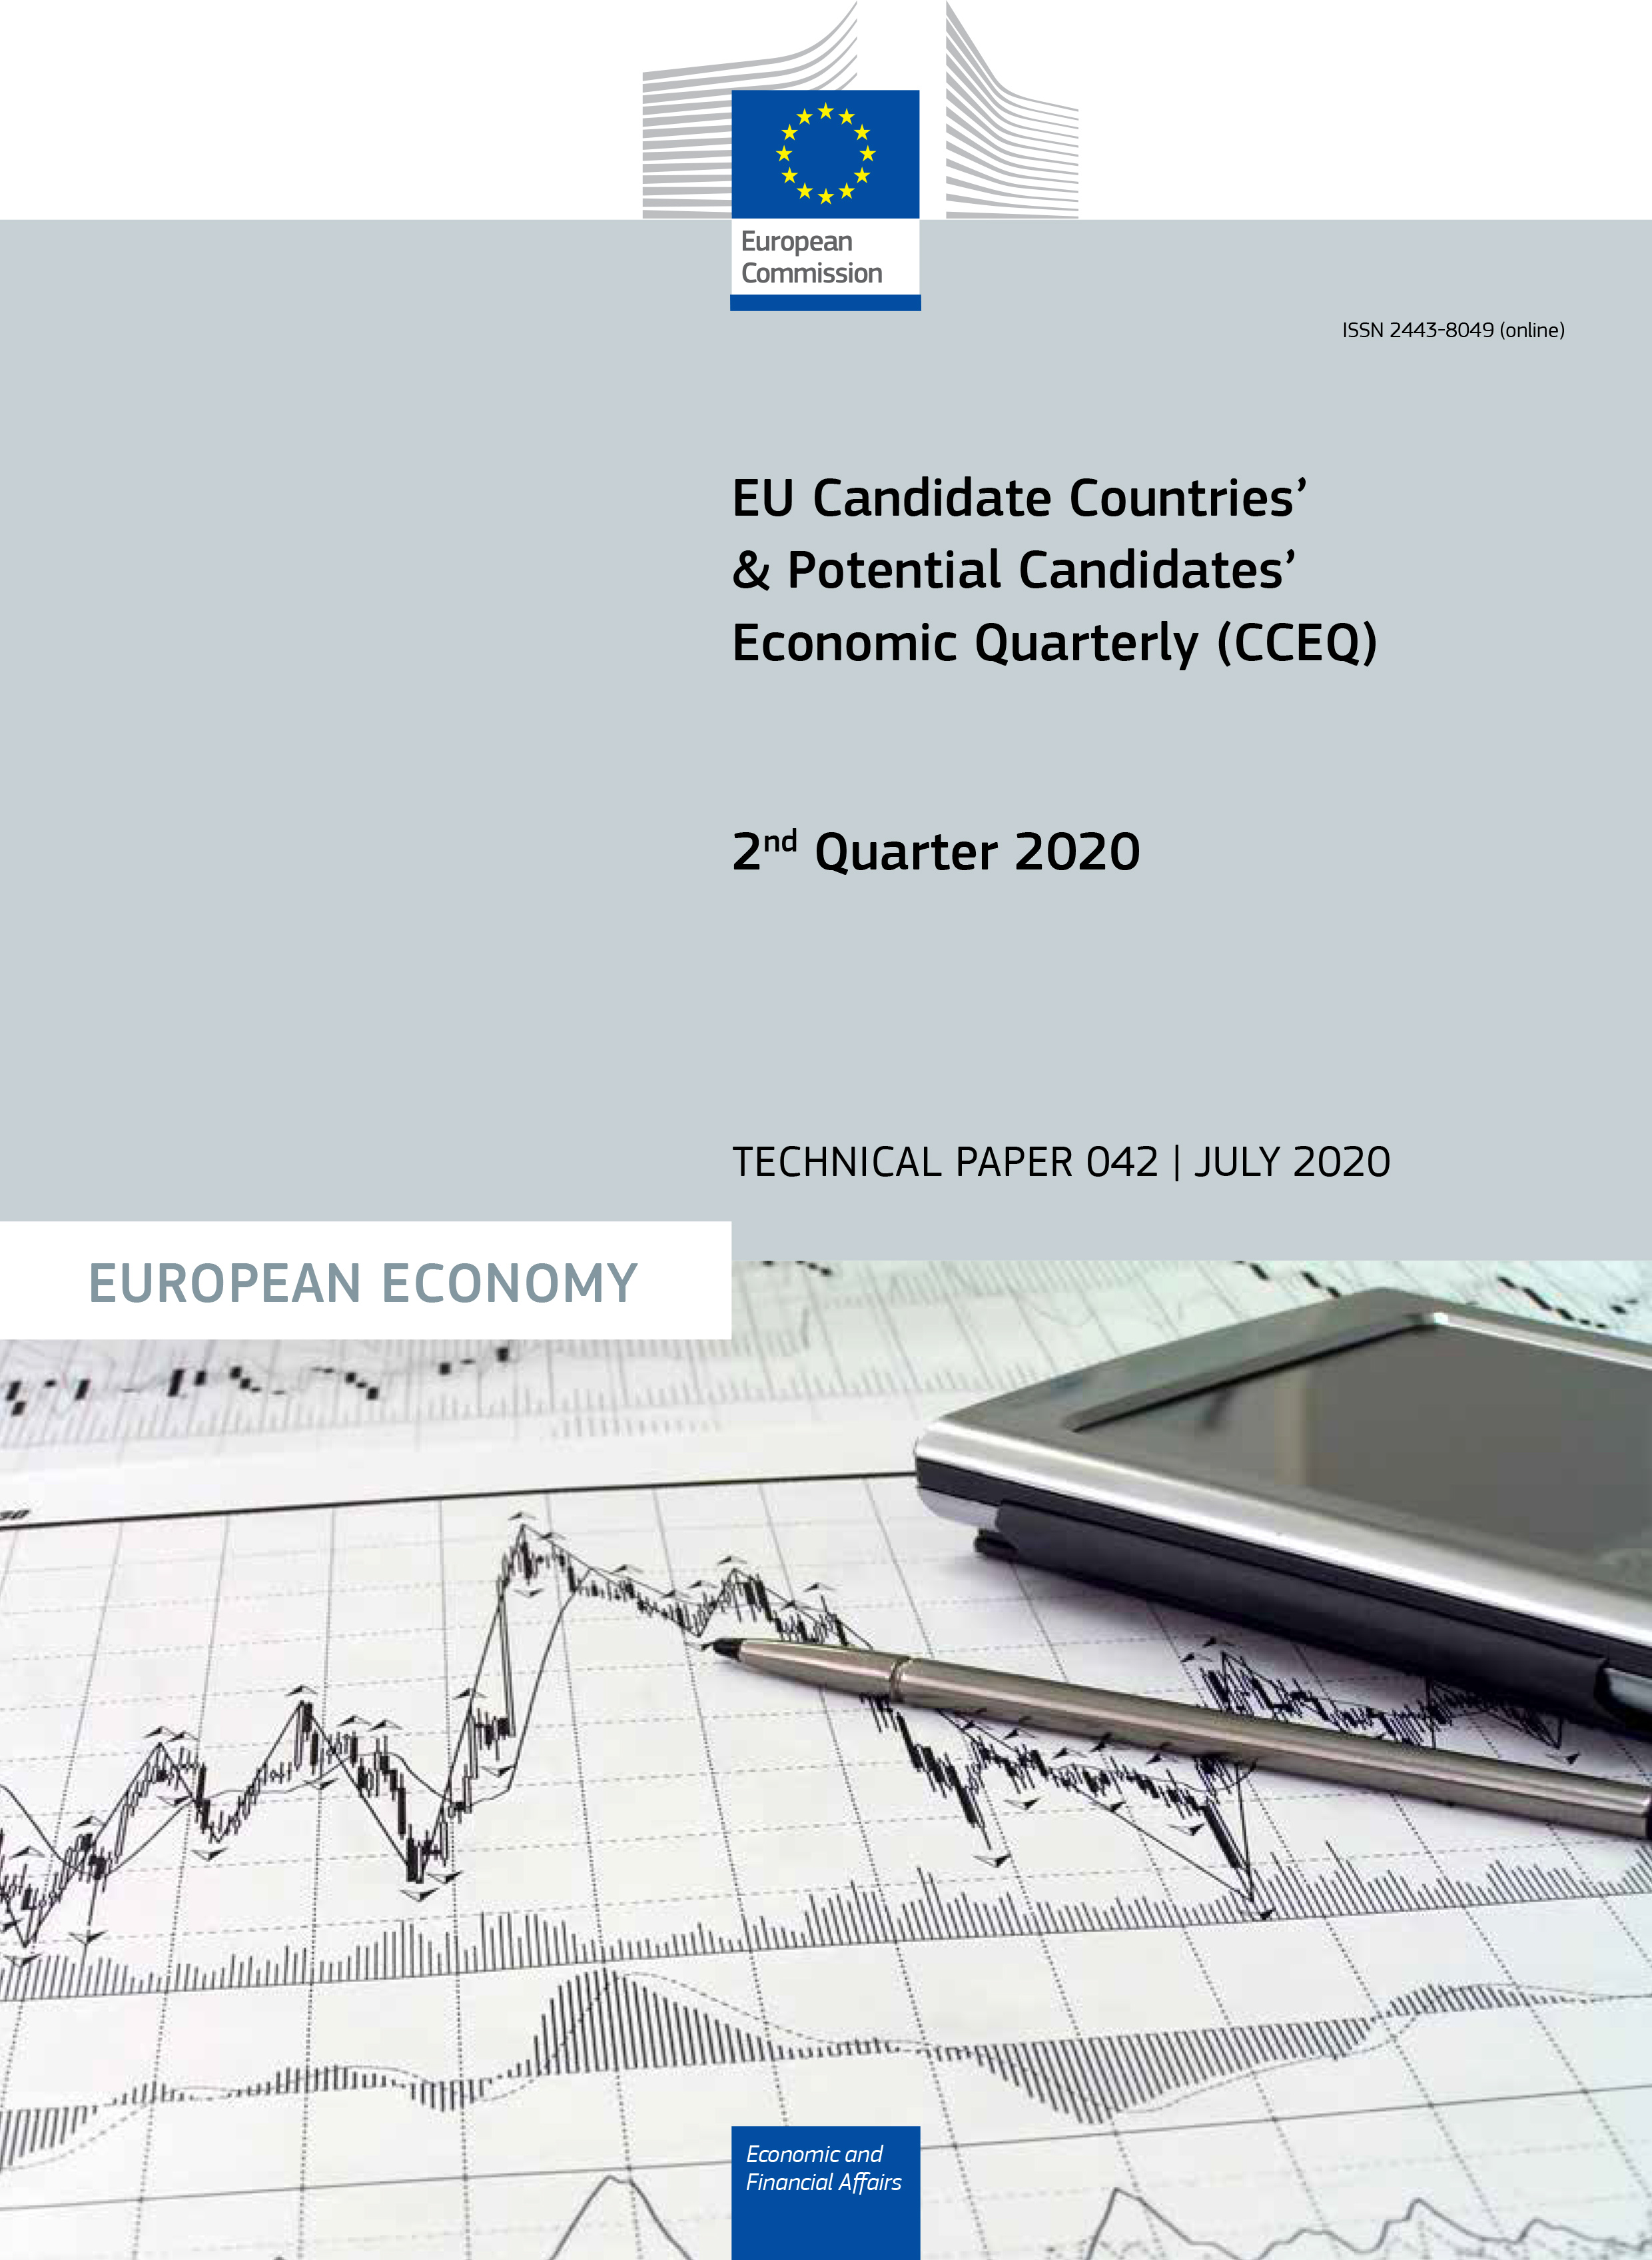 EU Candidate Countries' & Potential Candidates' Economic Quarterly (CCEQ) – 2nd Quarter 2020